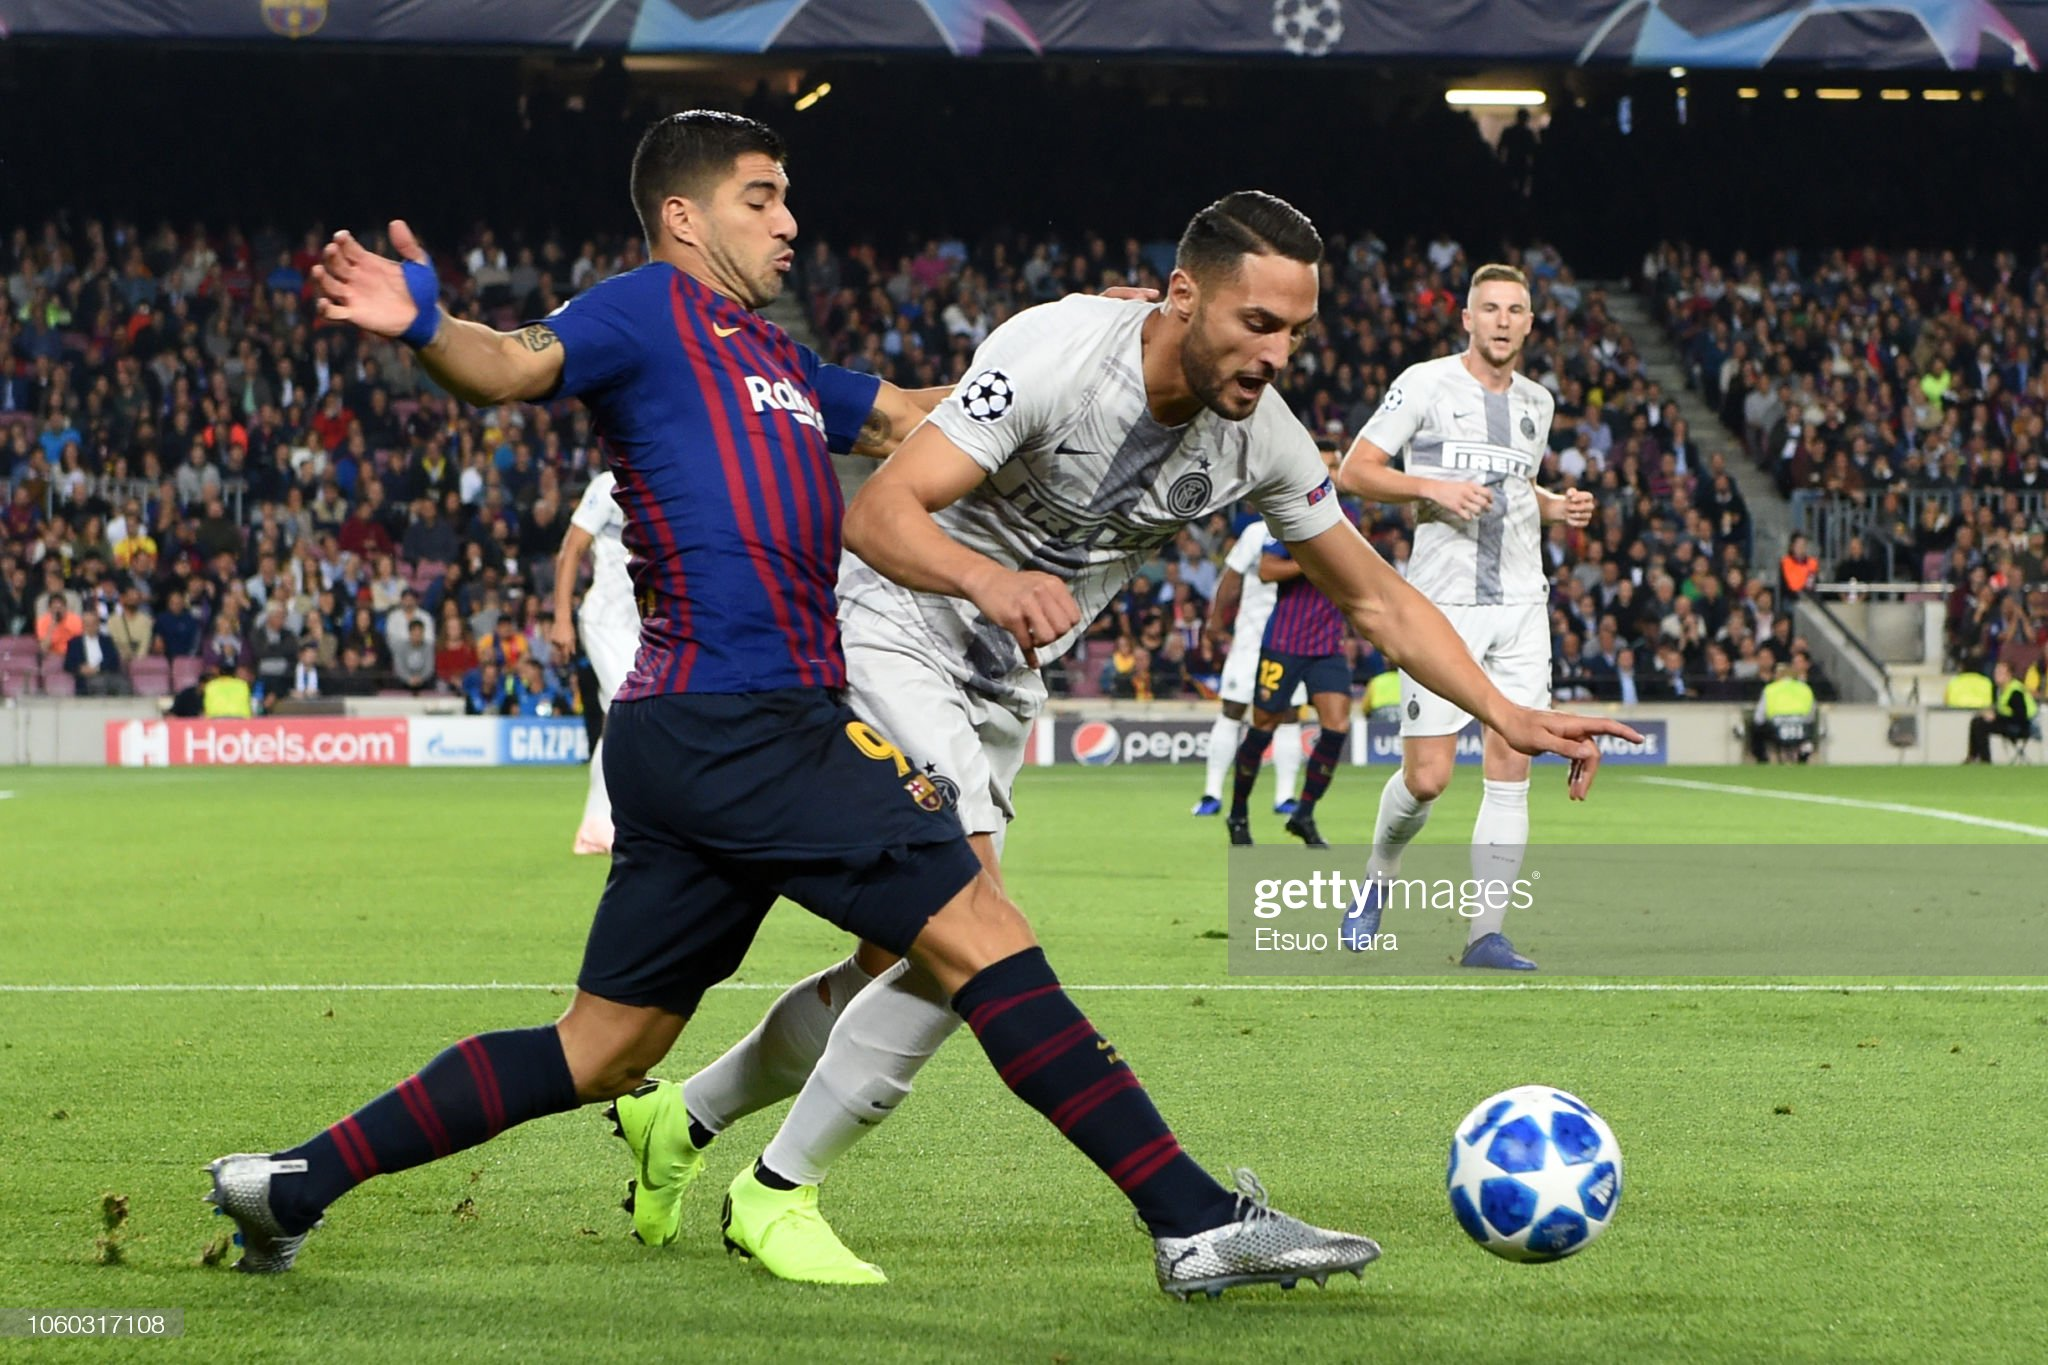 Barcelona v Inter preview, prediction and odds